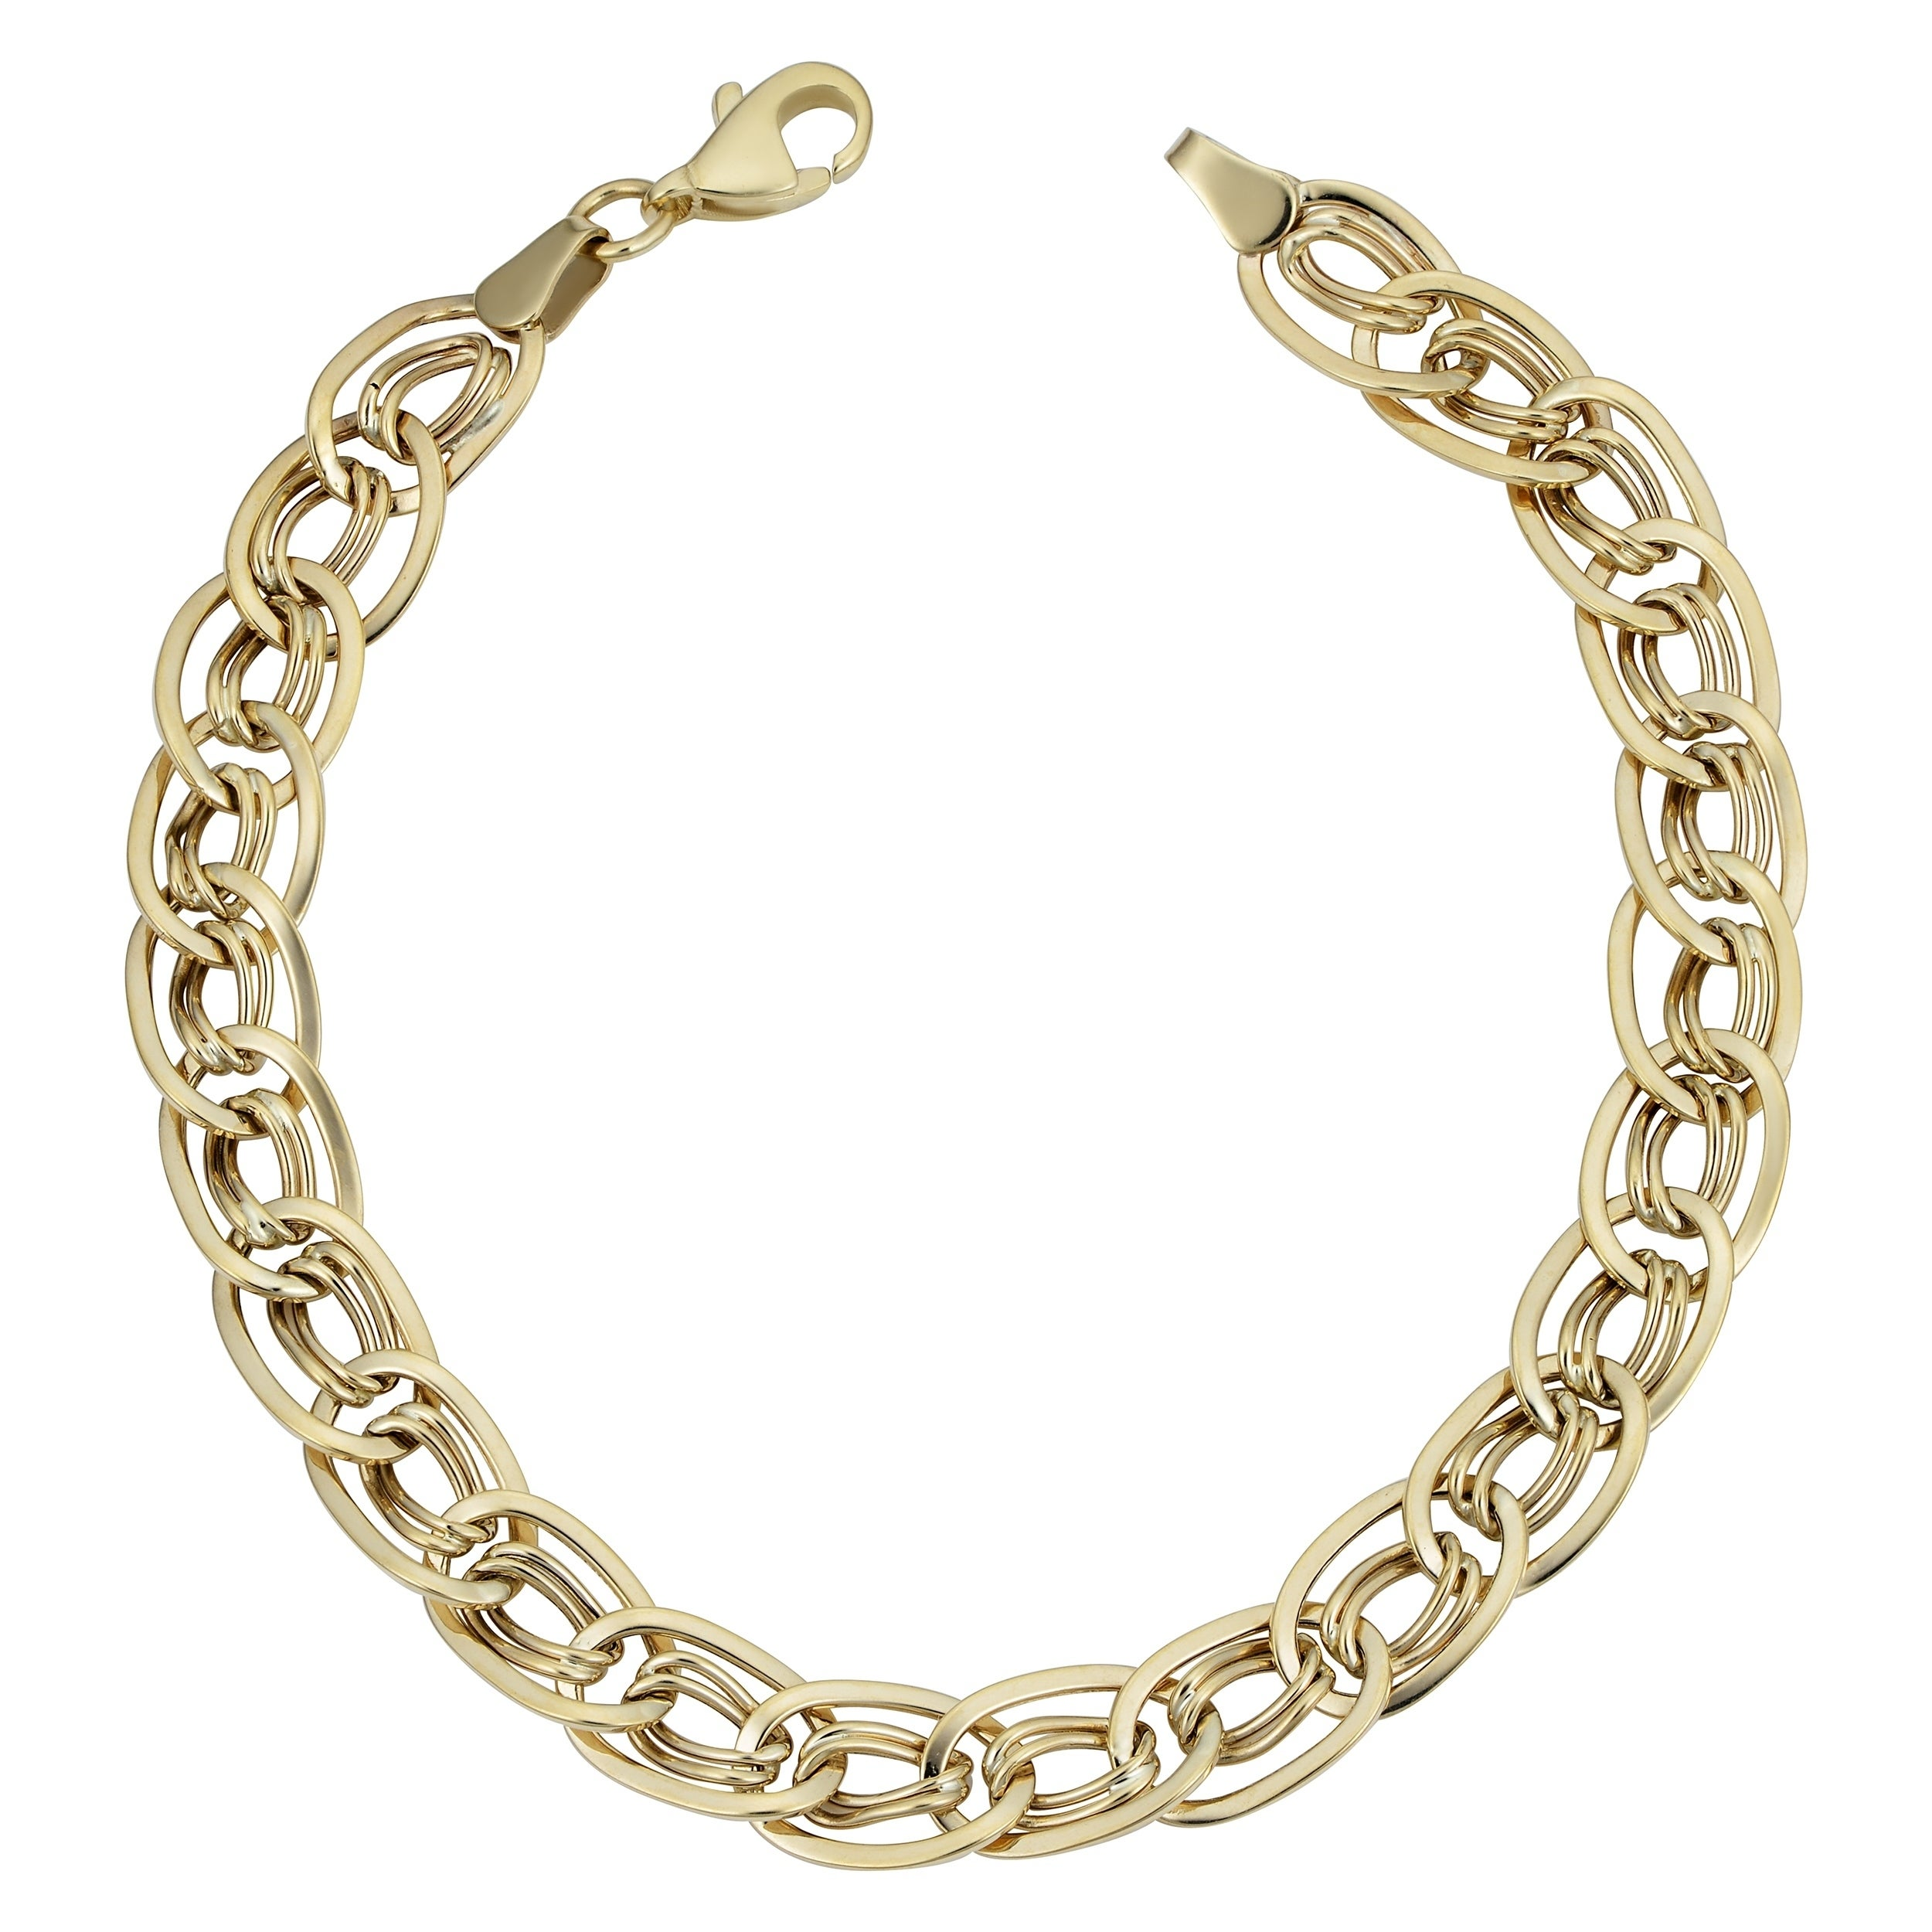 Fine Anklets 2019 New Style 14k Two Gold Abstract Fancy Link Design Ankle Bracelet 2.8 Grams Anklet Clearance Price Jewelry & Watches